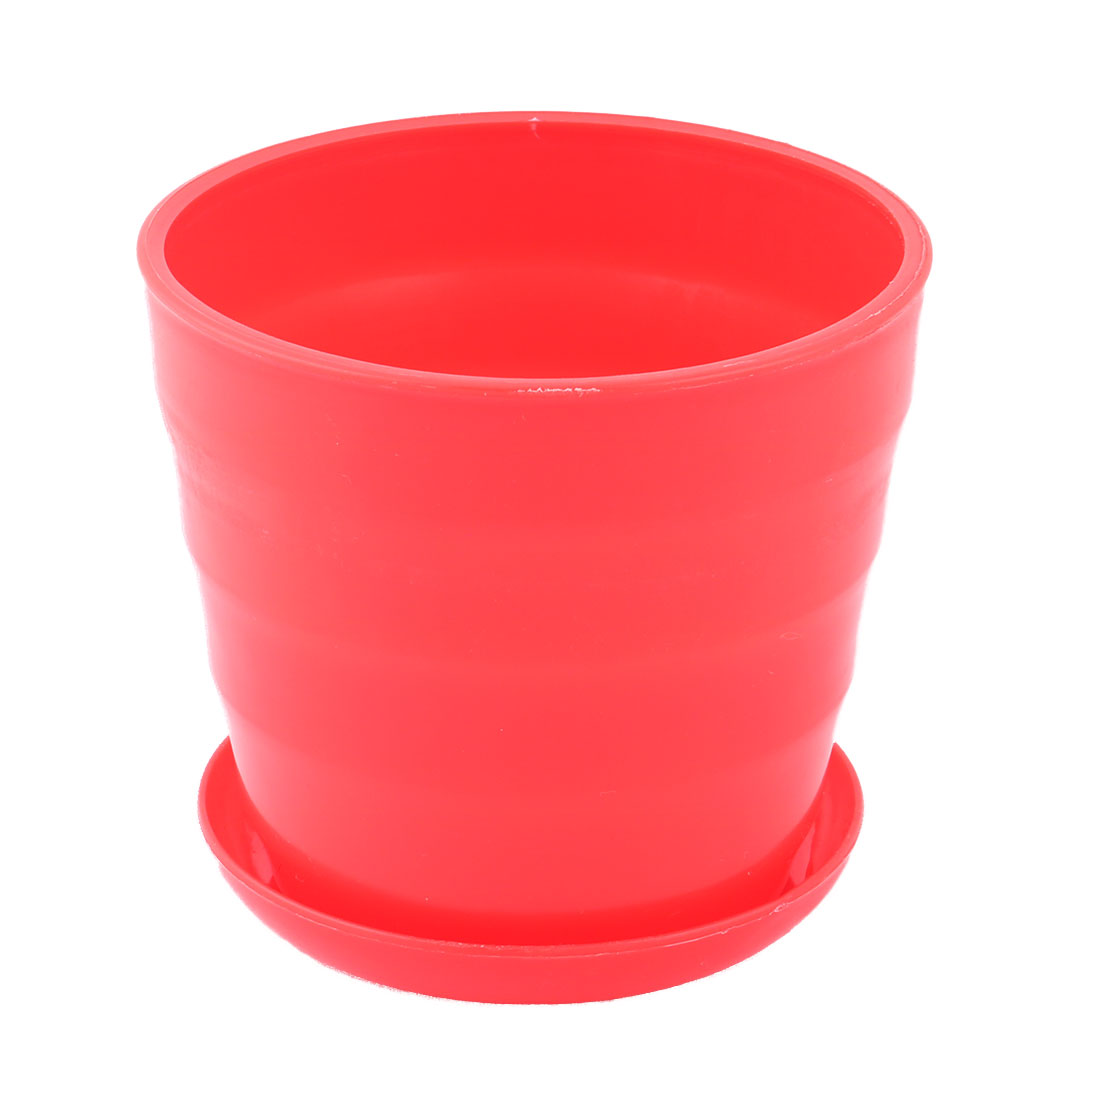 Yard Garden Plastic Round Plant Succulent Aloe Holder Flower Pot Container Red